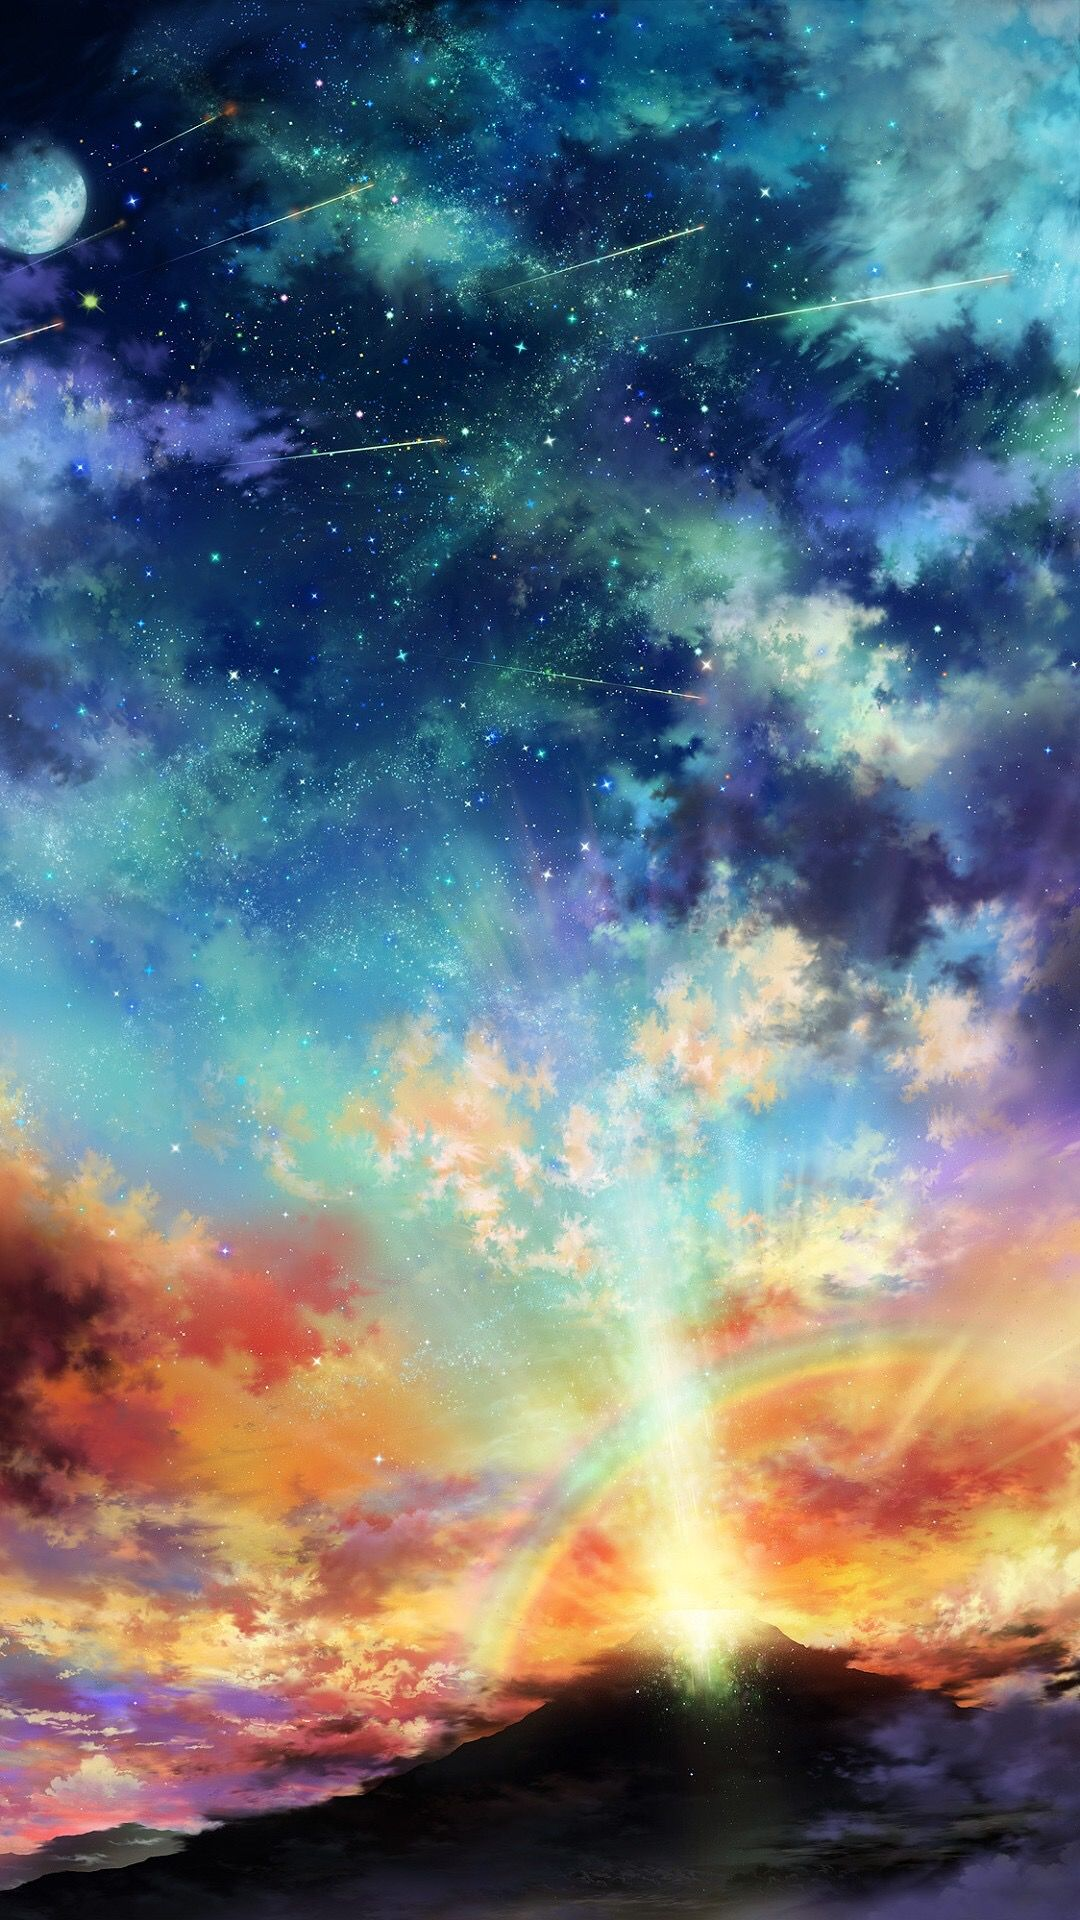 Iphone Wallpaper Backgrounds Anime Scenery Anime